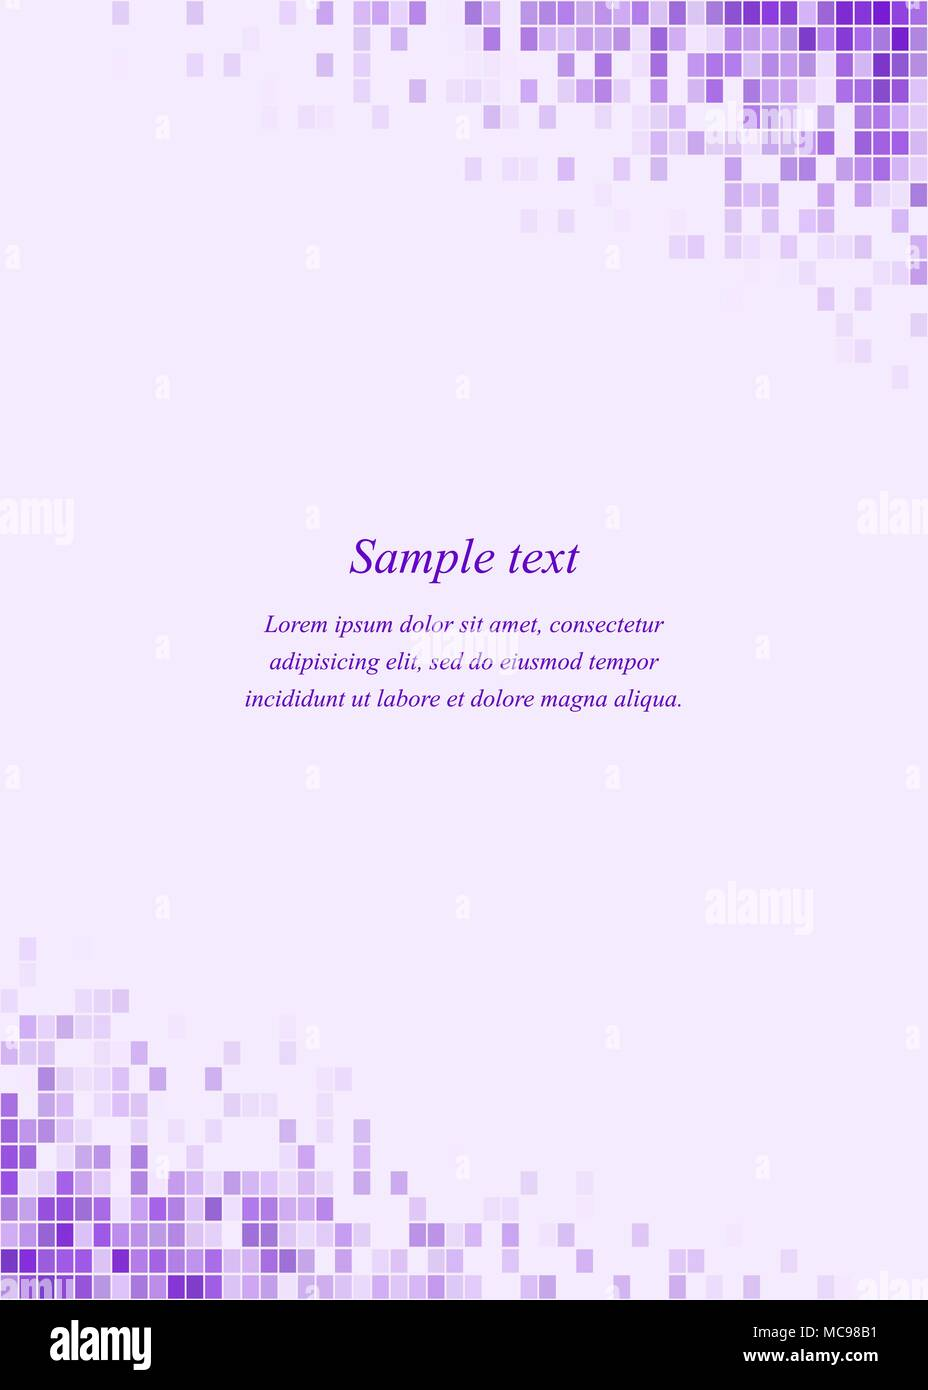 Purple page corner design template  - Stock Image